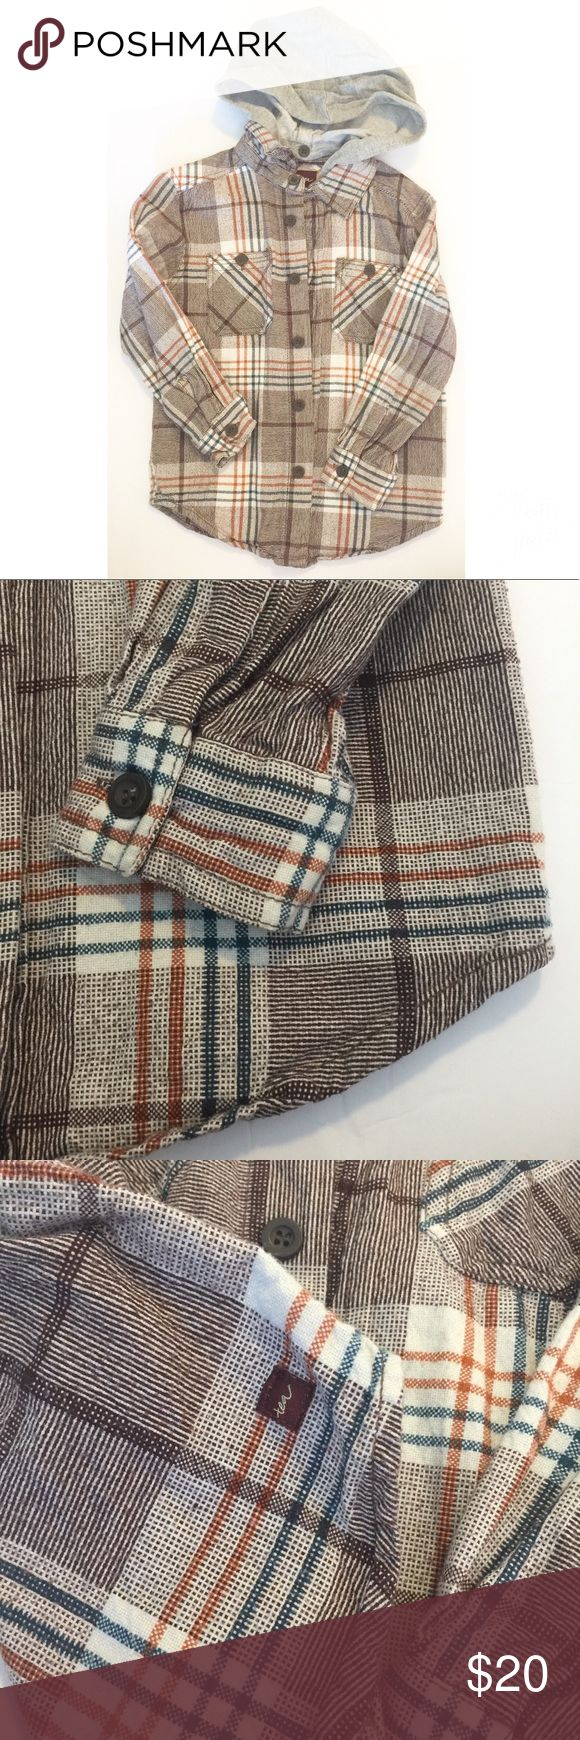 Tea Collection hooded flannel Excellent condition plaid button down flannel shirt with jersey hood option to remove we used for pictures always hung dry Tea Collection Shirts & Tops Button Down Shirts